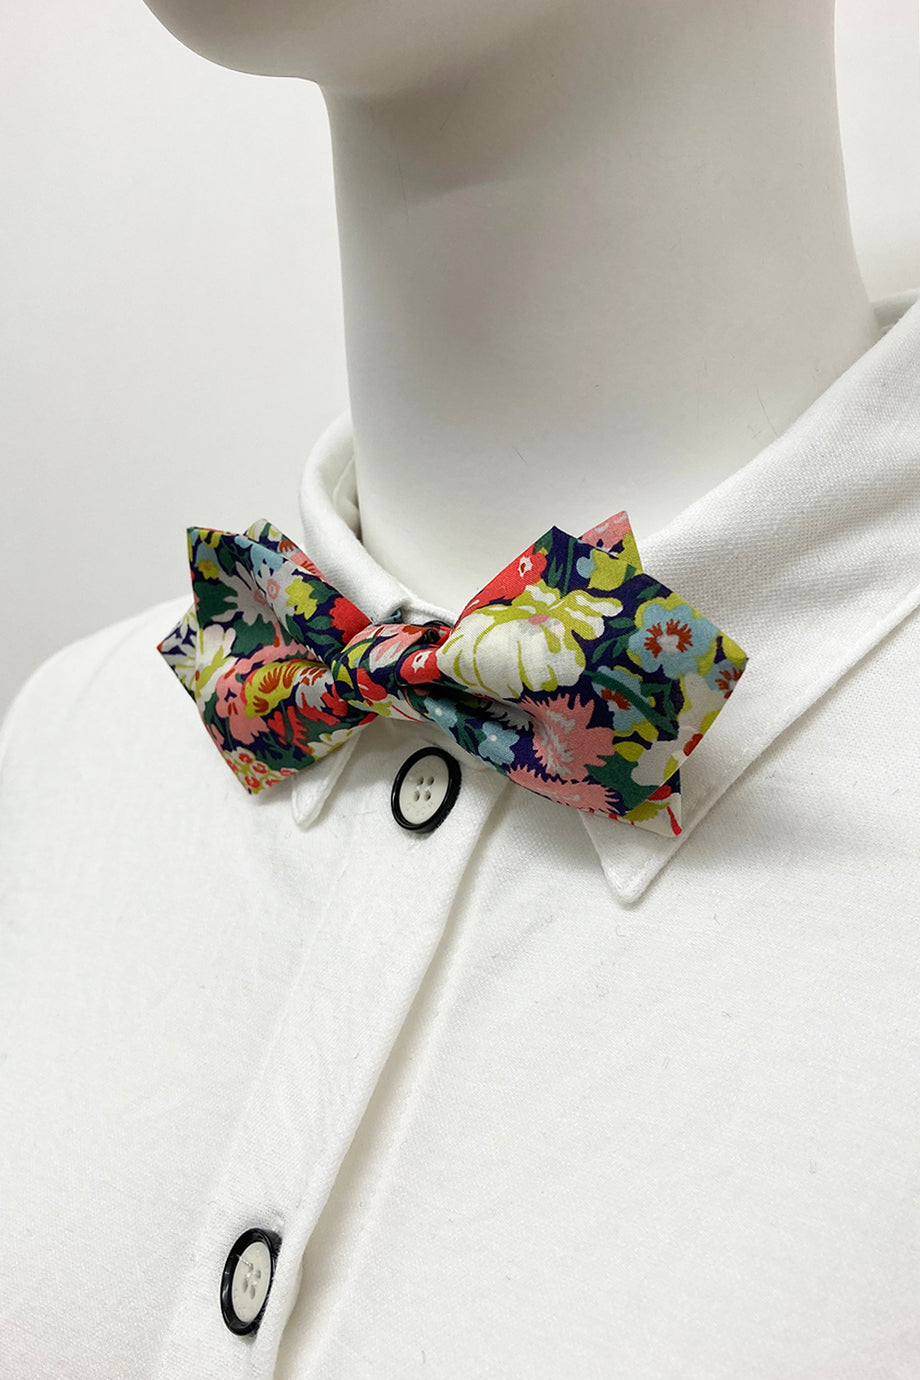 WORLD Diamond Point Bow Tie - Liberty's Floral Cotton